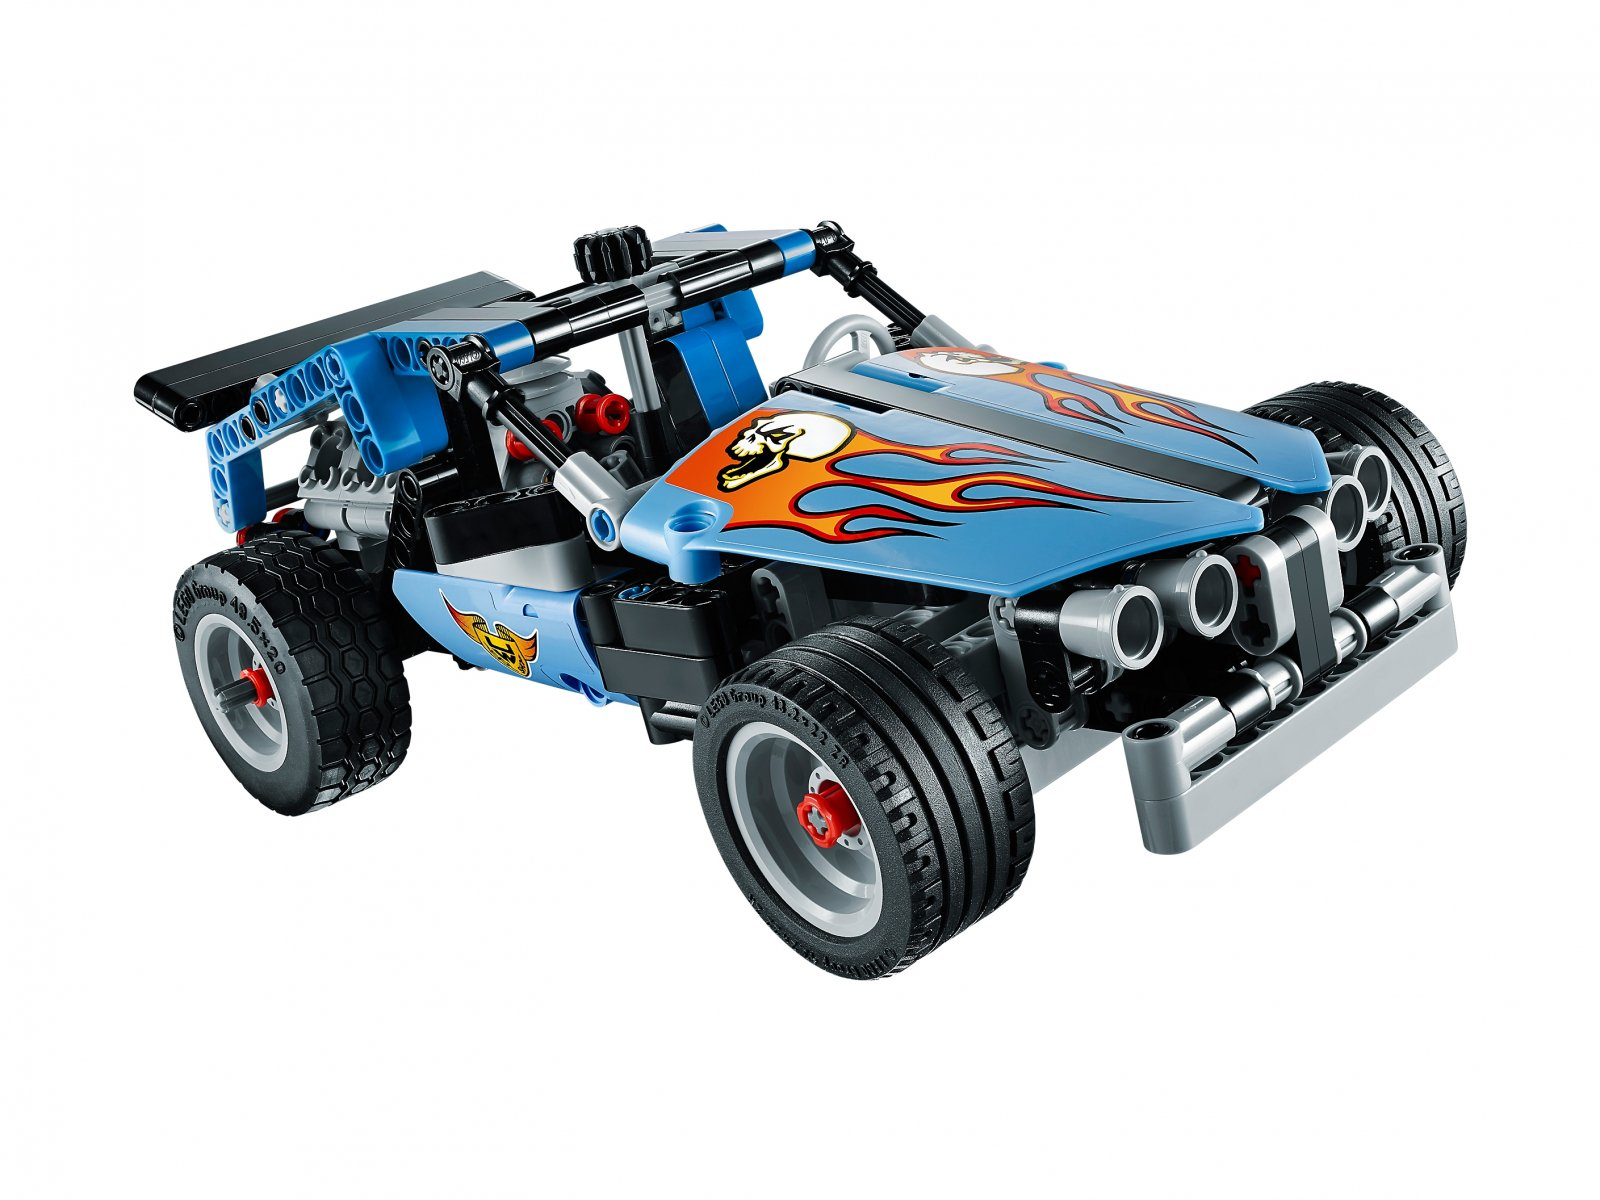 LEGO Technic Hot rod 42022